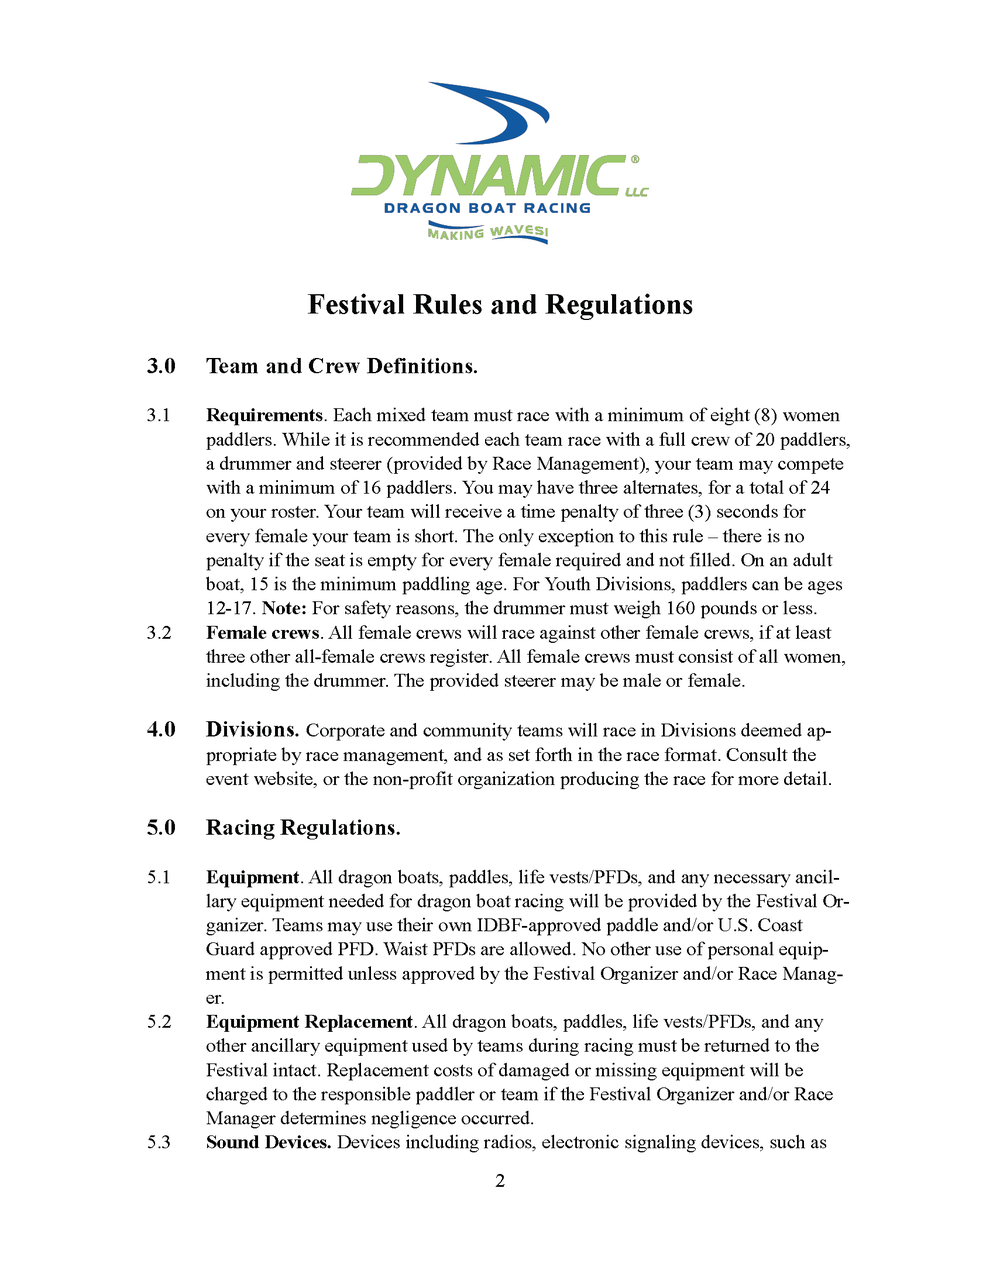 Dynamic_Festival_RulesRegulations_2019_Page_02.png